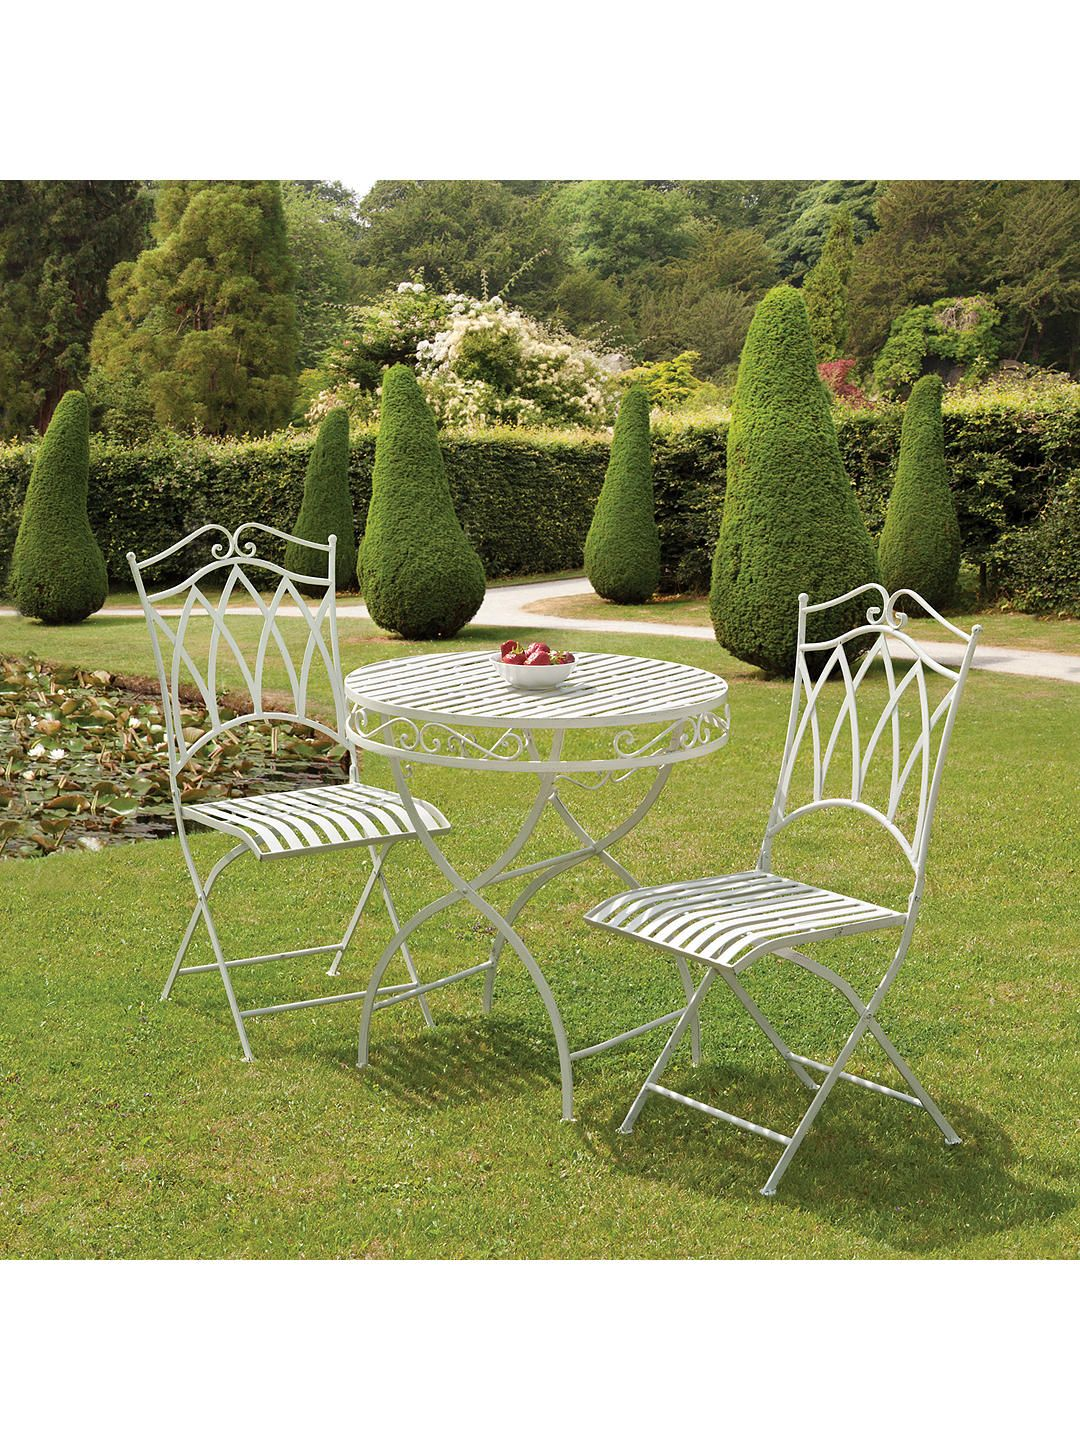 Suntime Gloucester 2 Seater Garden Bistro Dining Table And Chairs